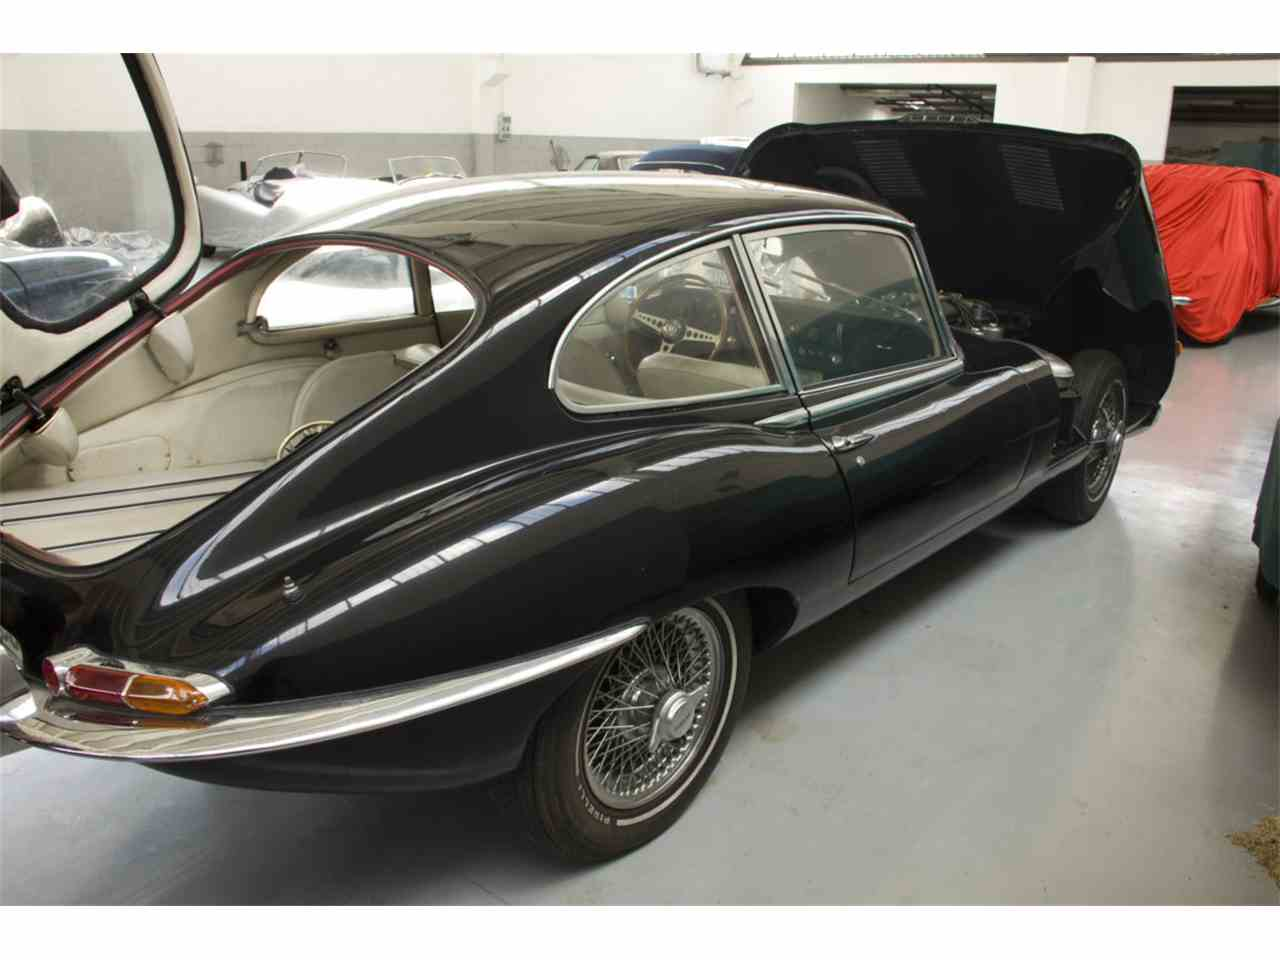 Large Picture of 1966 Jaguar E-Type located in MIlano Italy Offered by a Private Seller - MWBQ